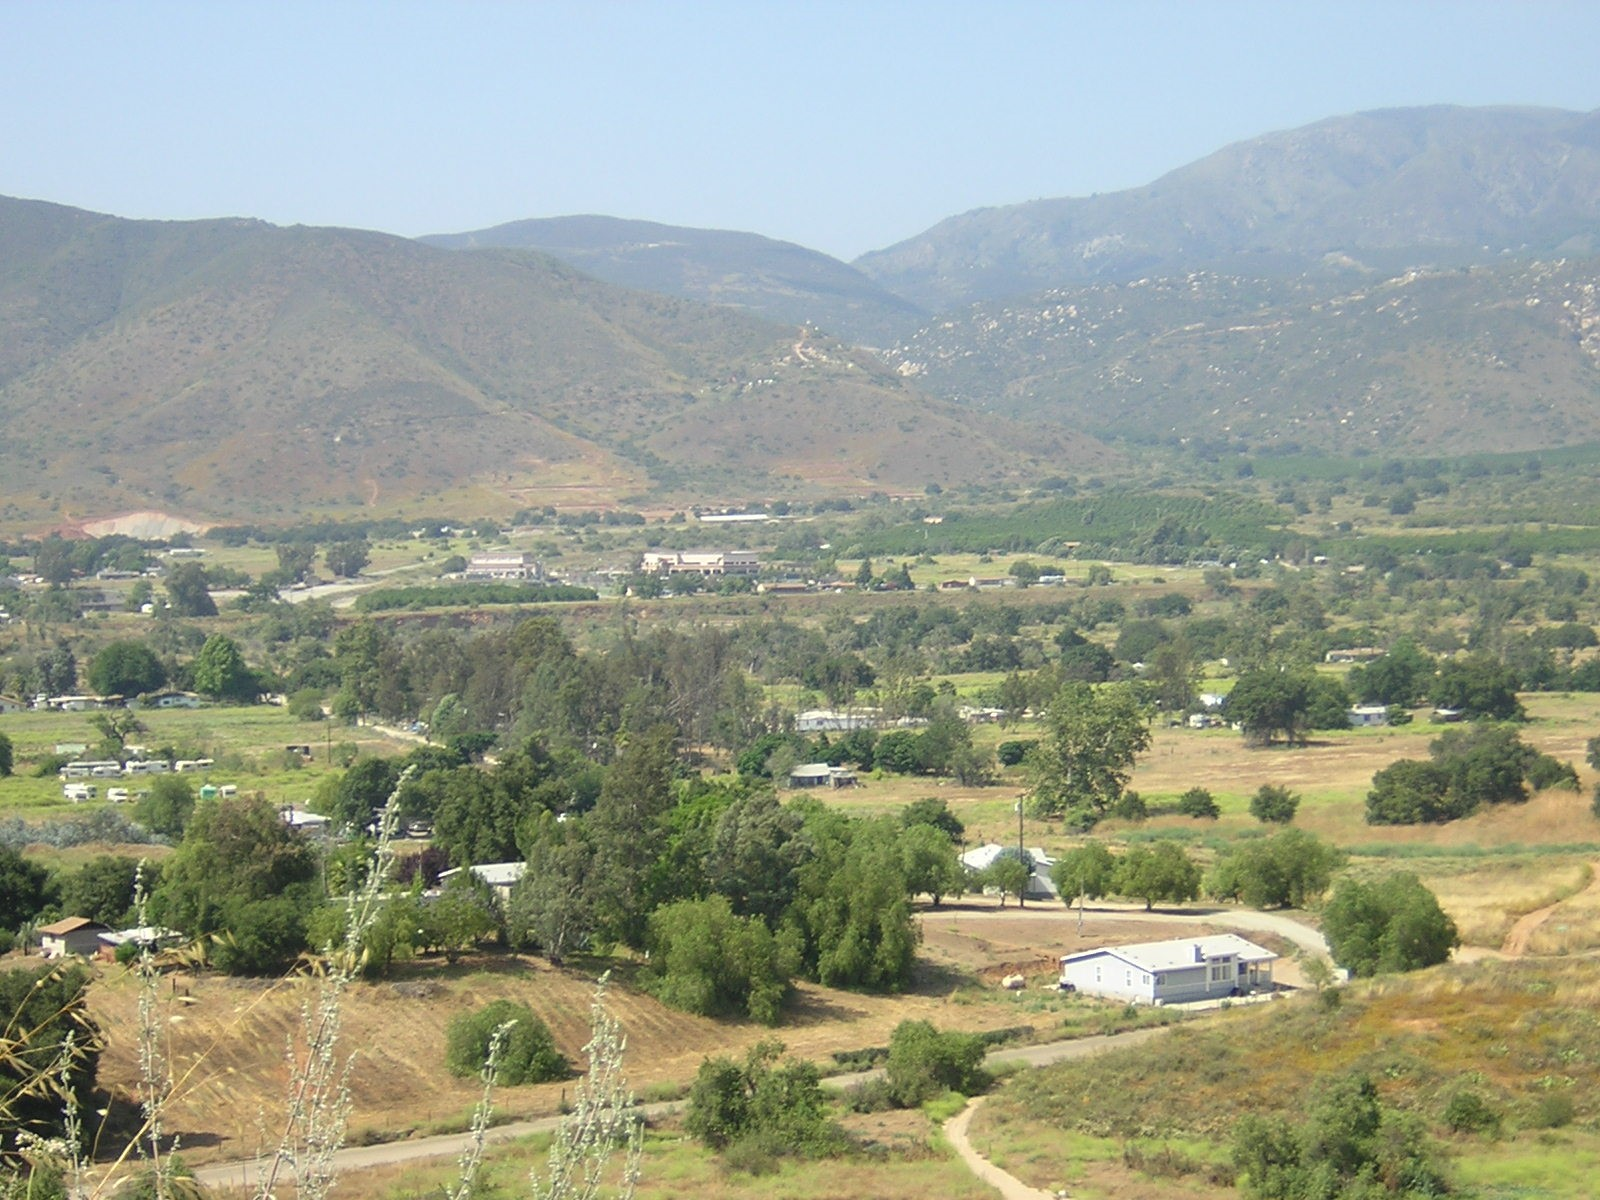 A lightly wooded valley surrounded by desert mountains with houses, roads, and agricultural fields